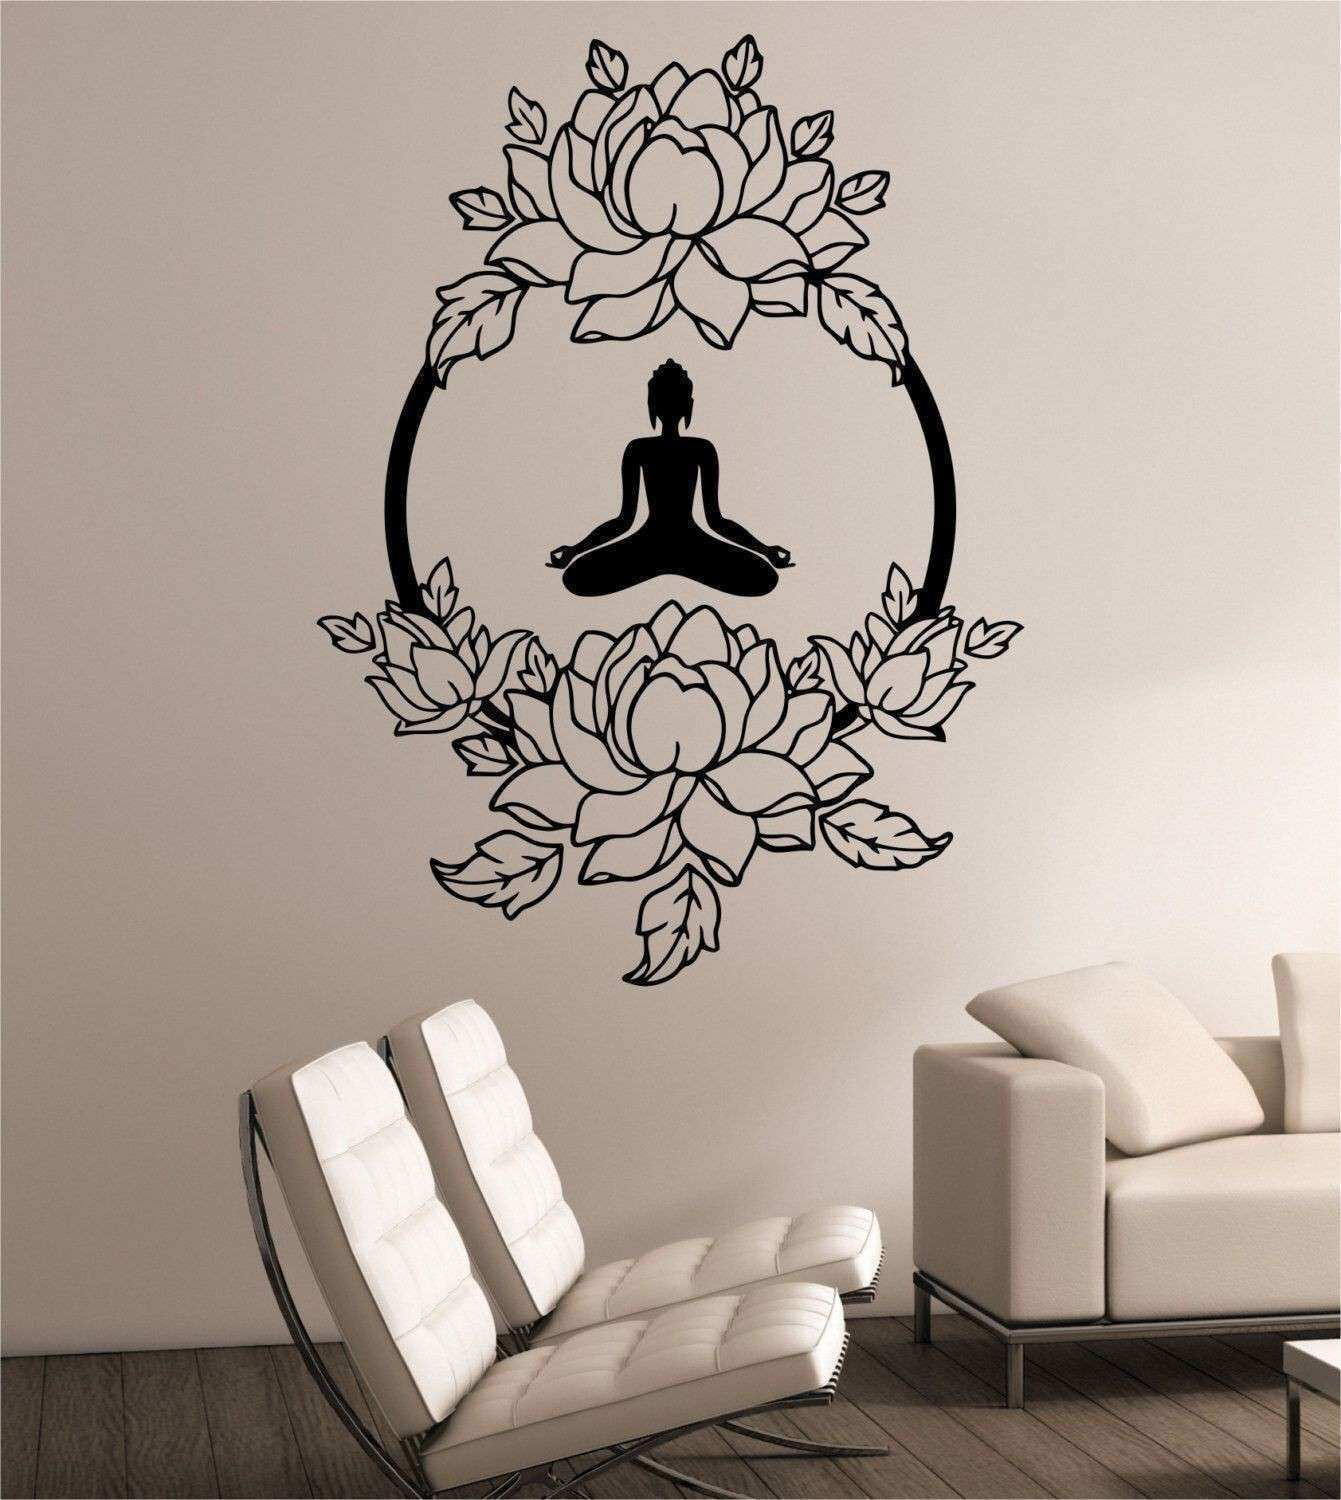 36 Luxury Wall Decals for Living Room ExitRealEstate540